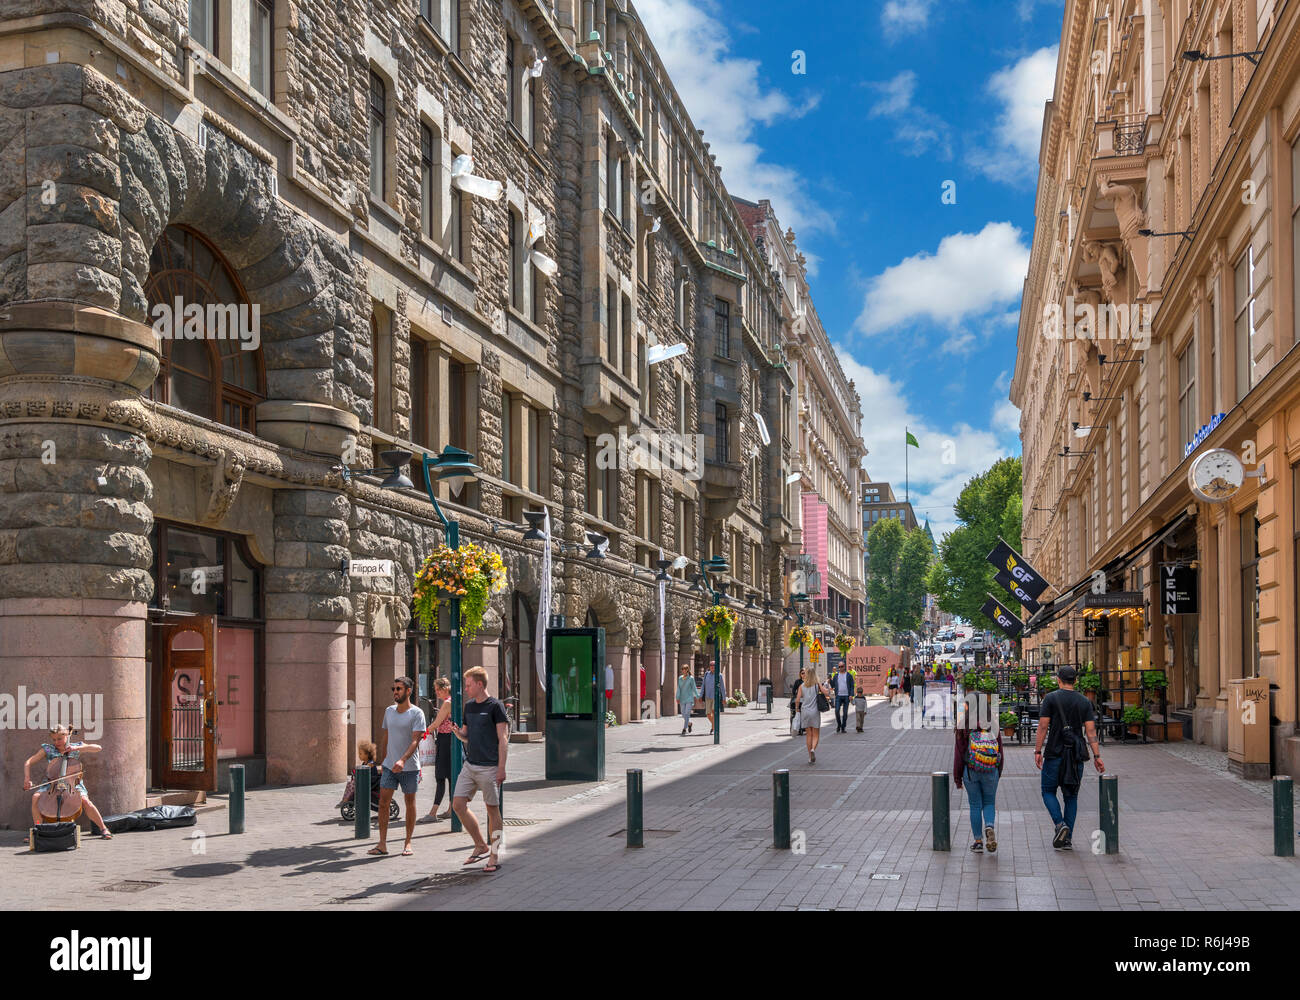 Shops on Mikonkatu street in the city centre, Helsinki, Finland - Stock Image